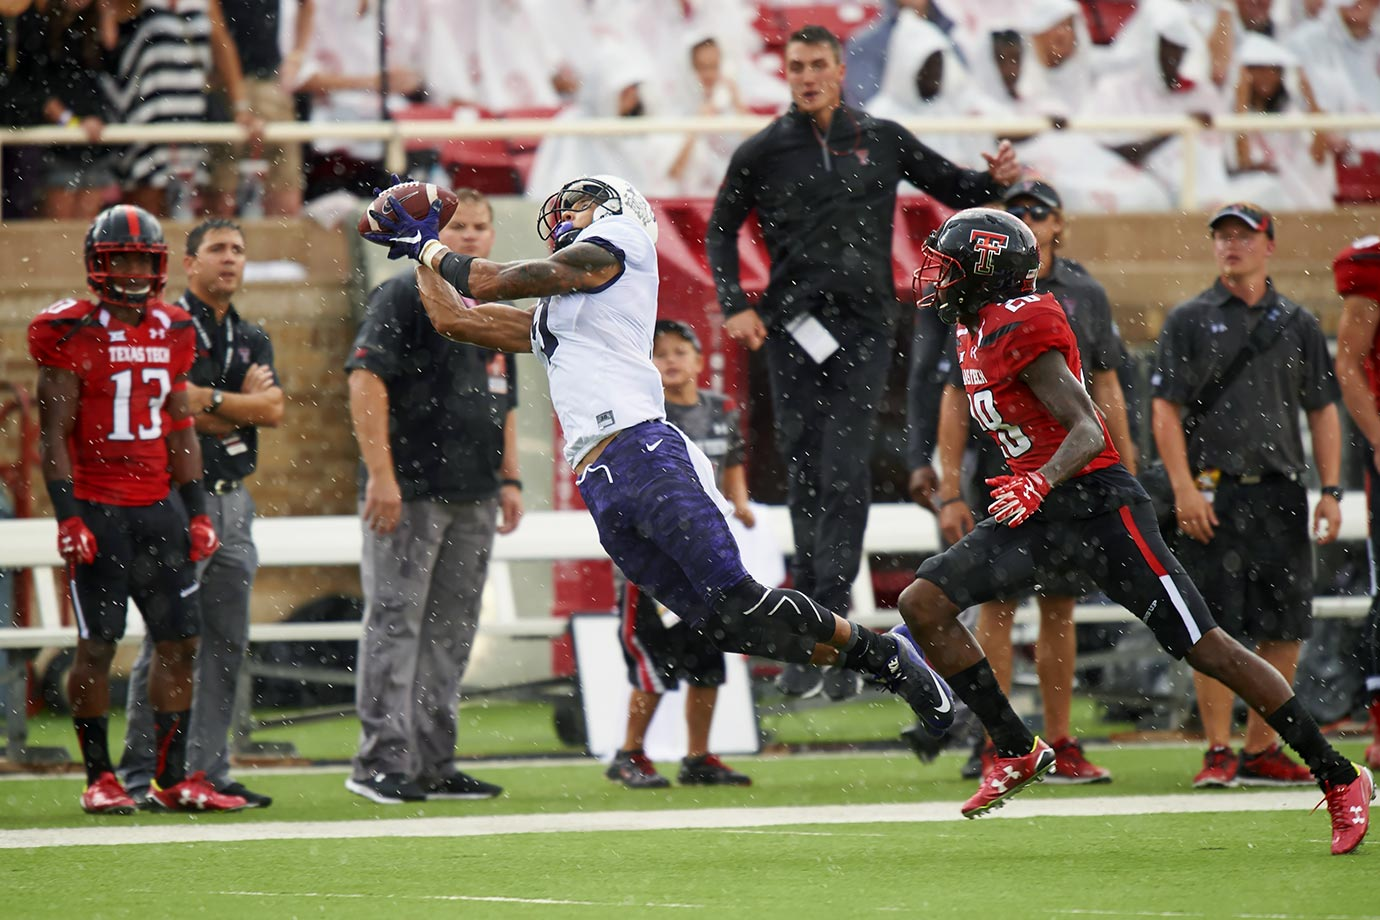 "The Horned Frogs' star runs 6'4"" and uses all of that frame to ward off defenders when the ball is in the air. His 1,300 yards and 14 TDs this season were the product of a great offensive system, sure, but he earned those stats by creating space."